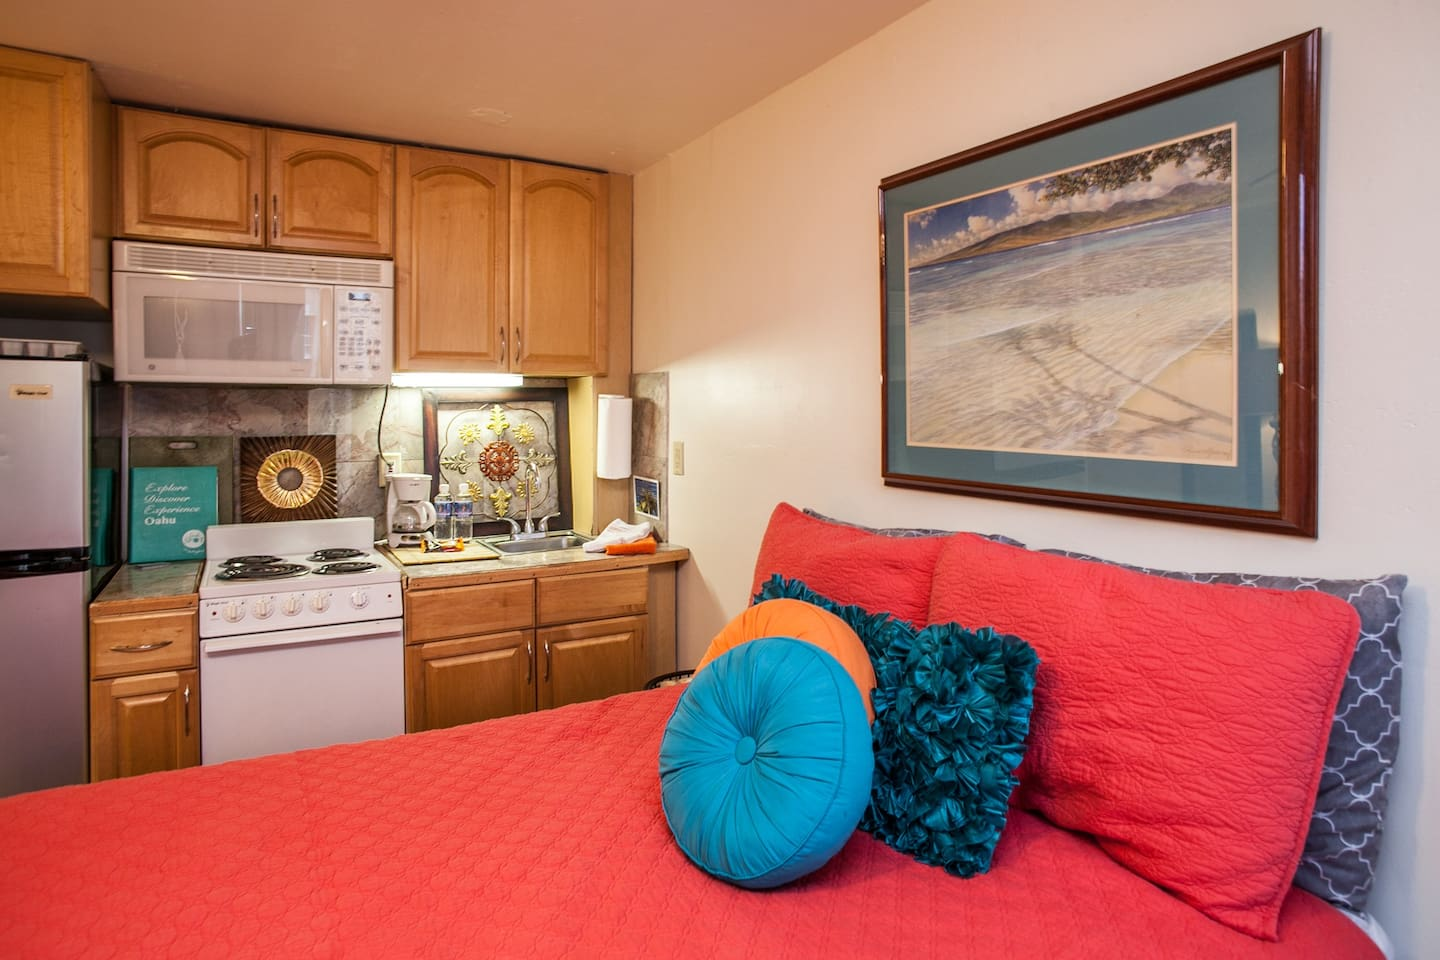 Queen size bed and kitchen